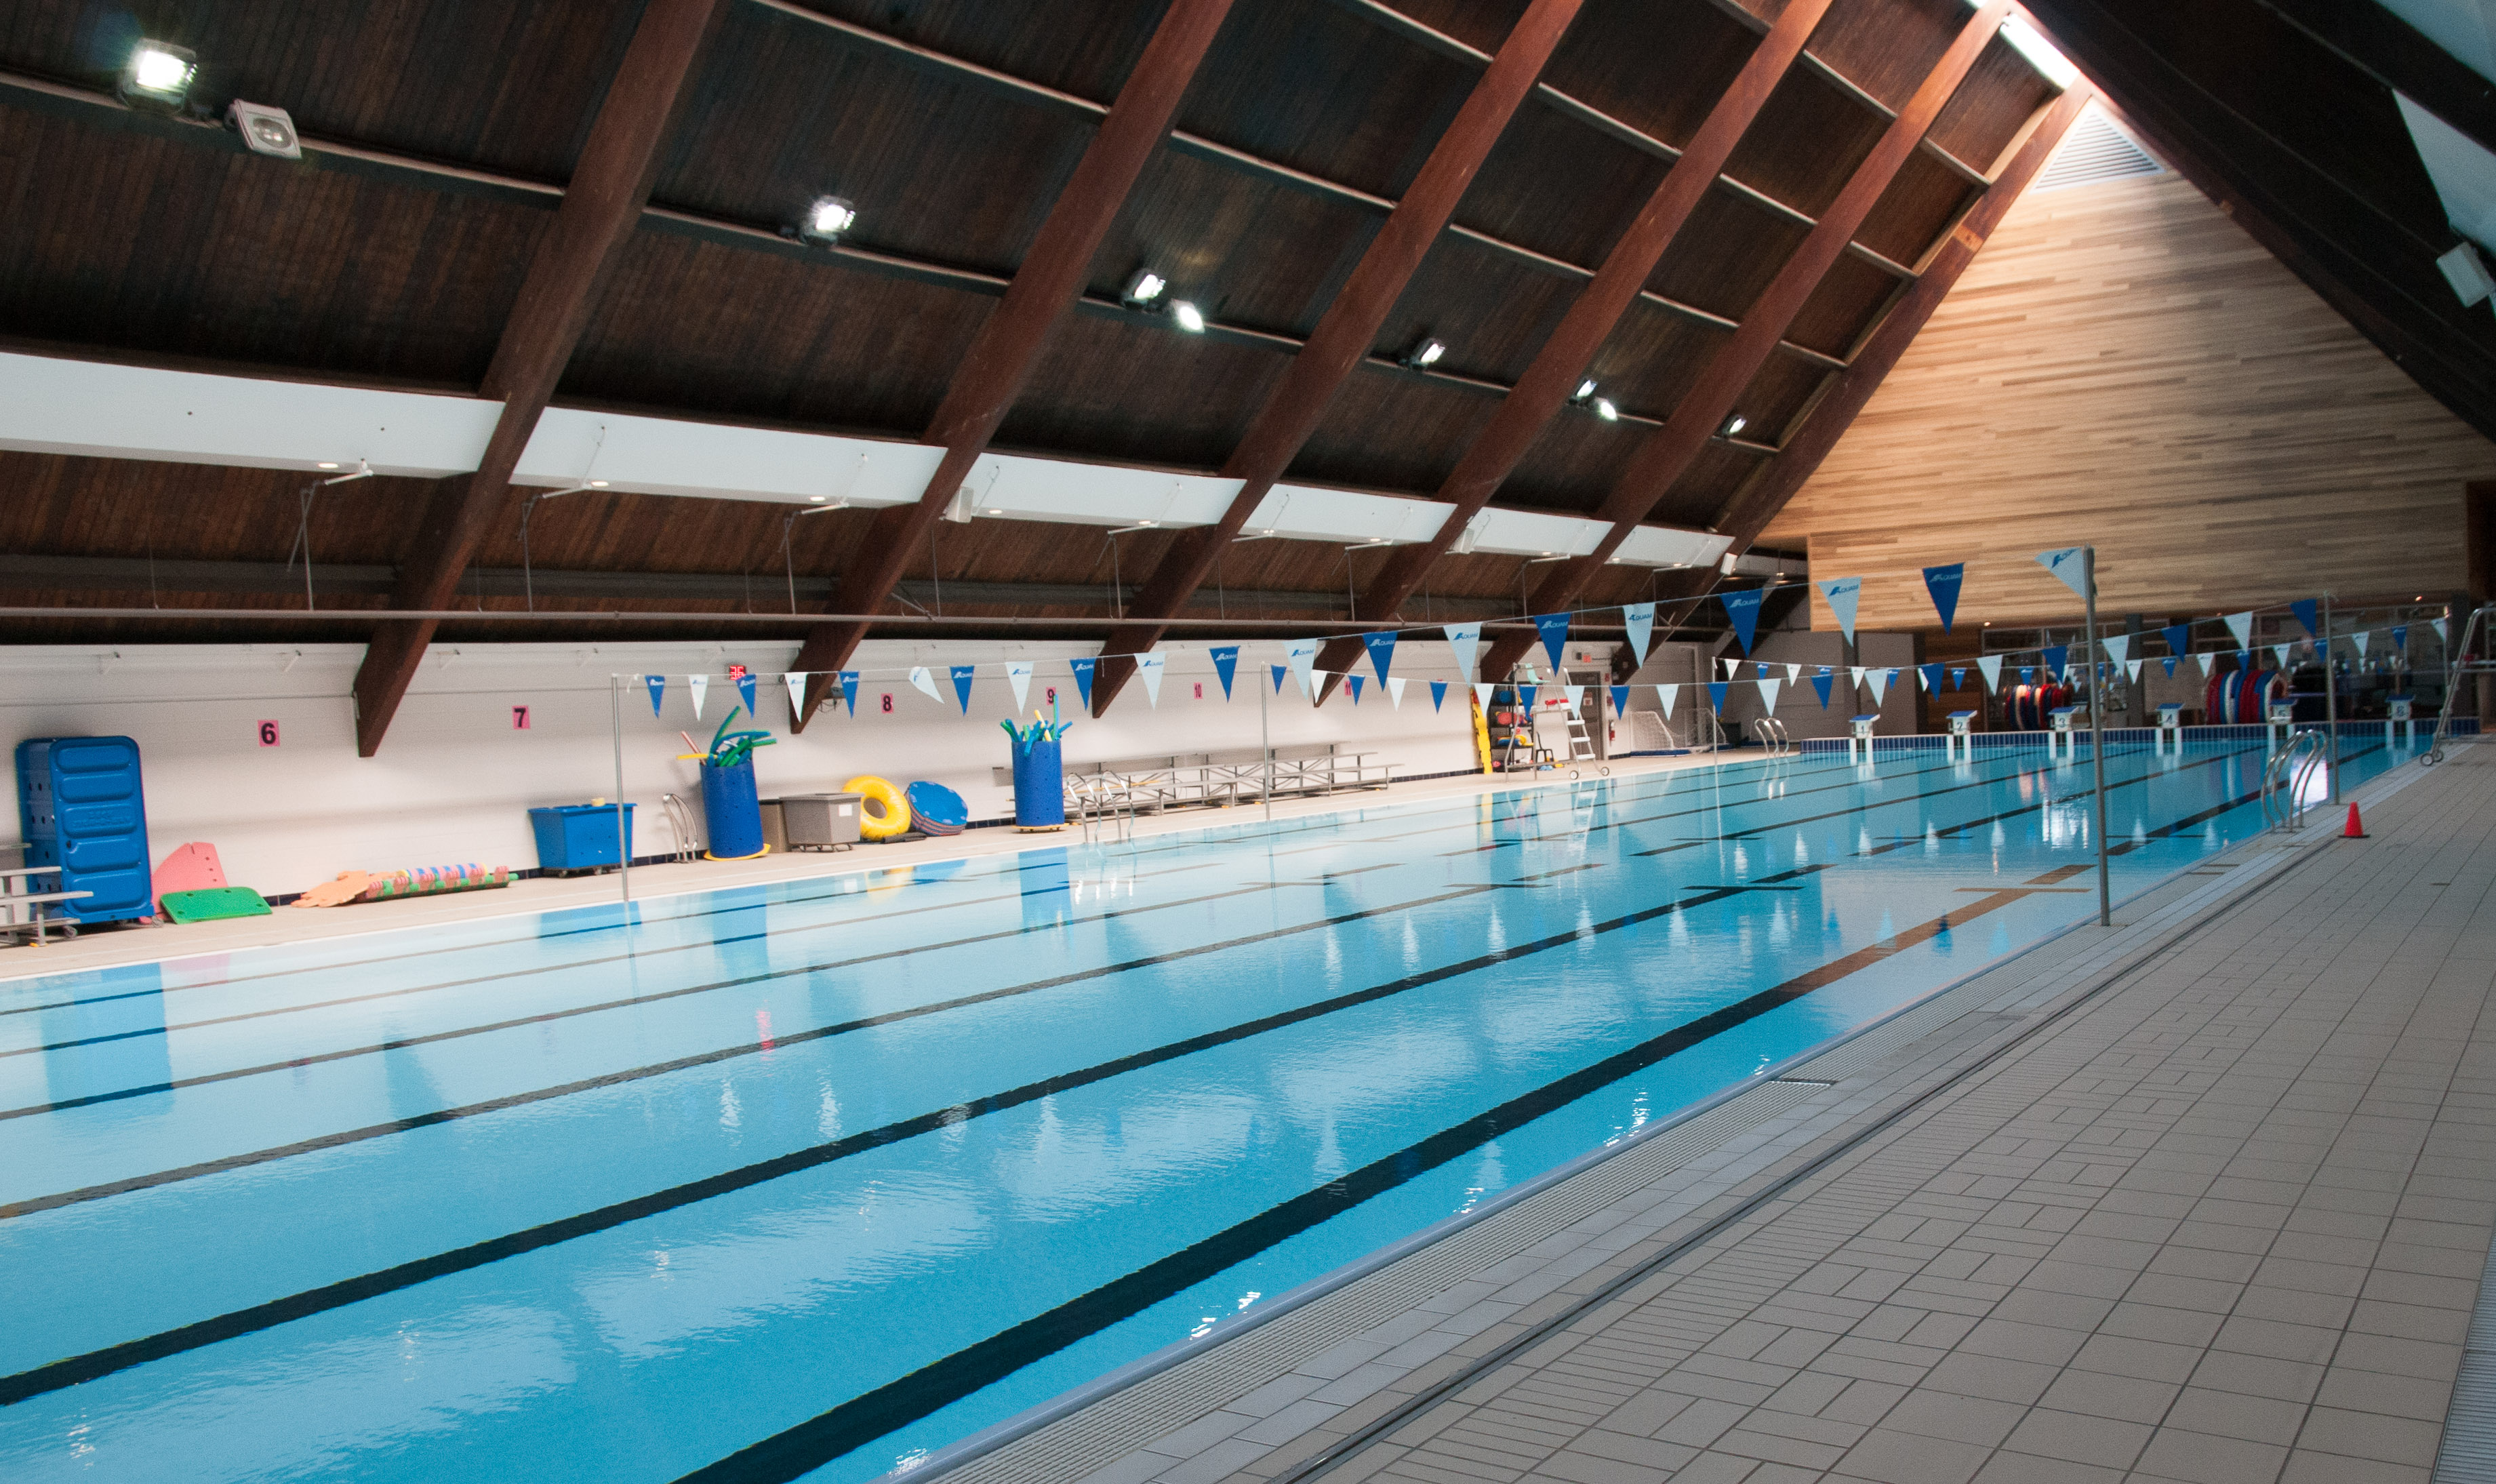 Aquatic centre city of pointe claire for Pointe claire swimming pool schedule